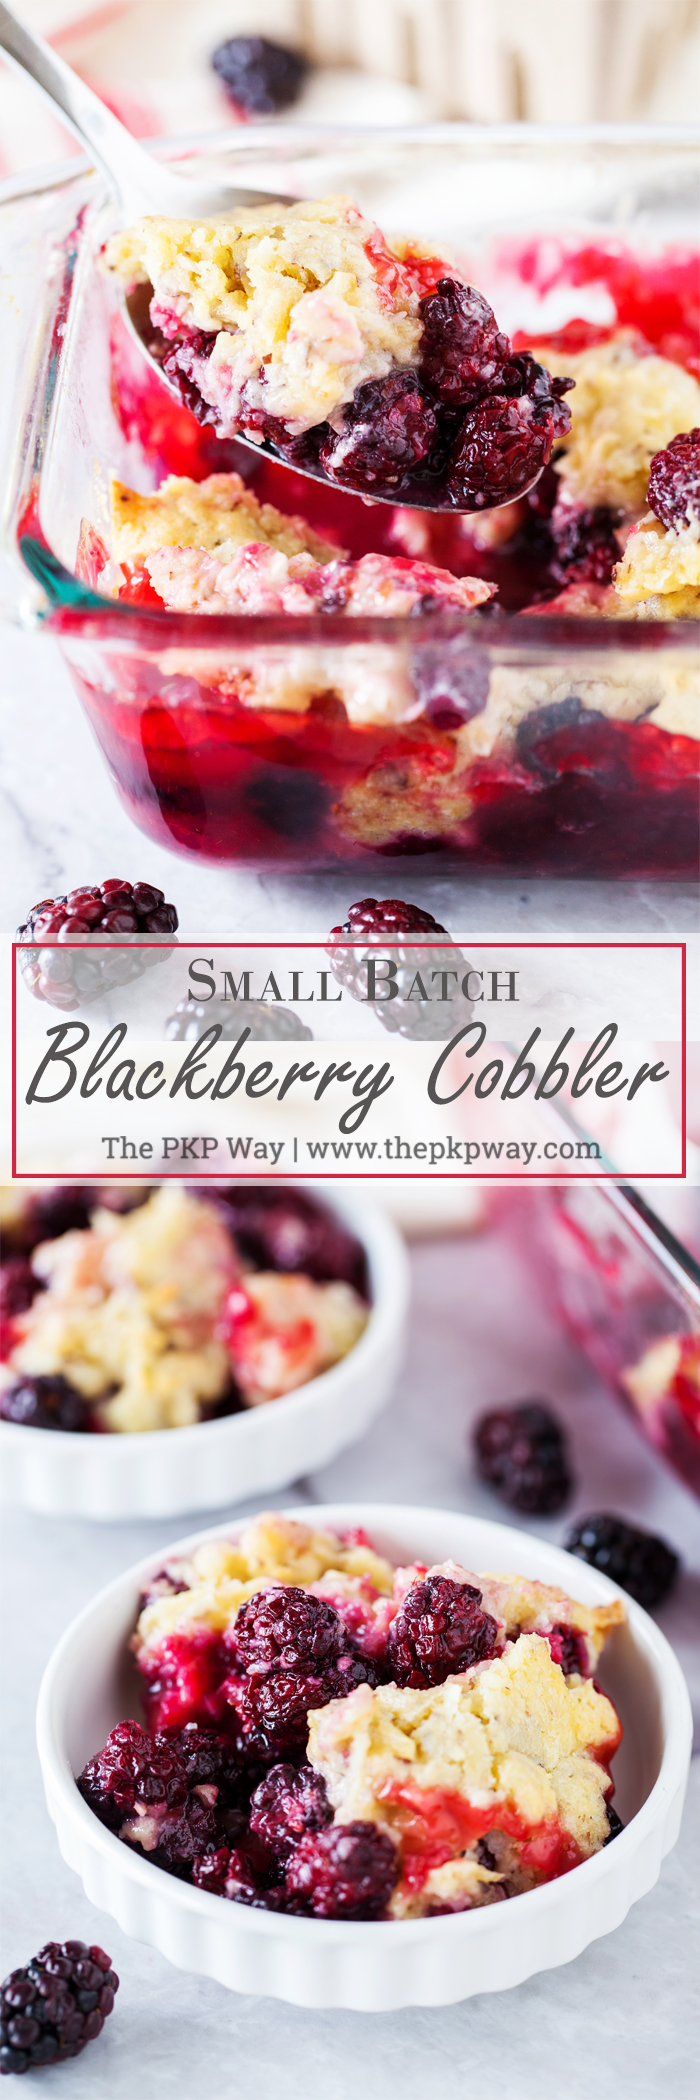 A tart and juicy blackberry filling topped with a secret-ingredient topping makes this Small Batch Blackberry Cobbler the perfect sweet treat at your next intimate gathering.